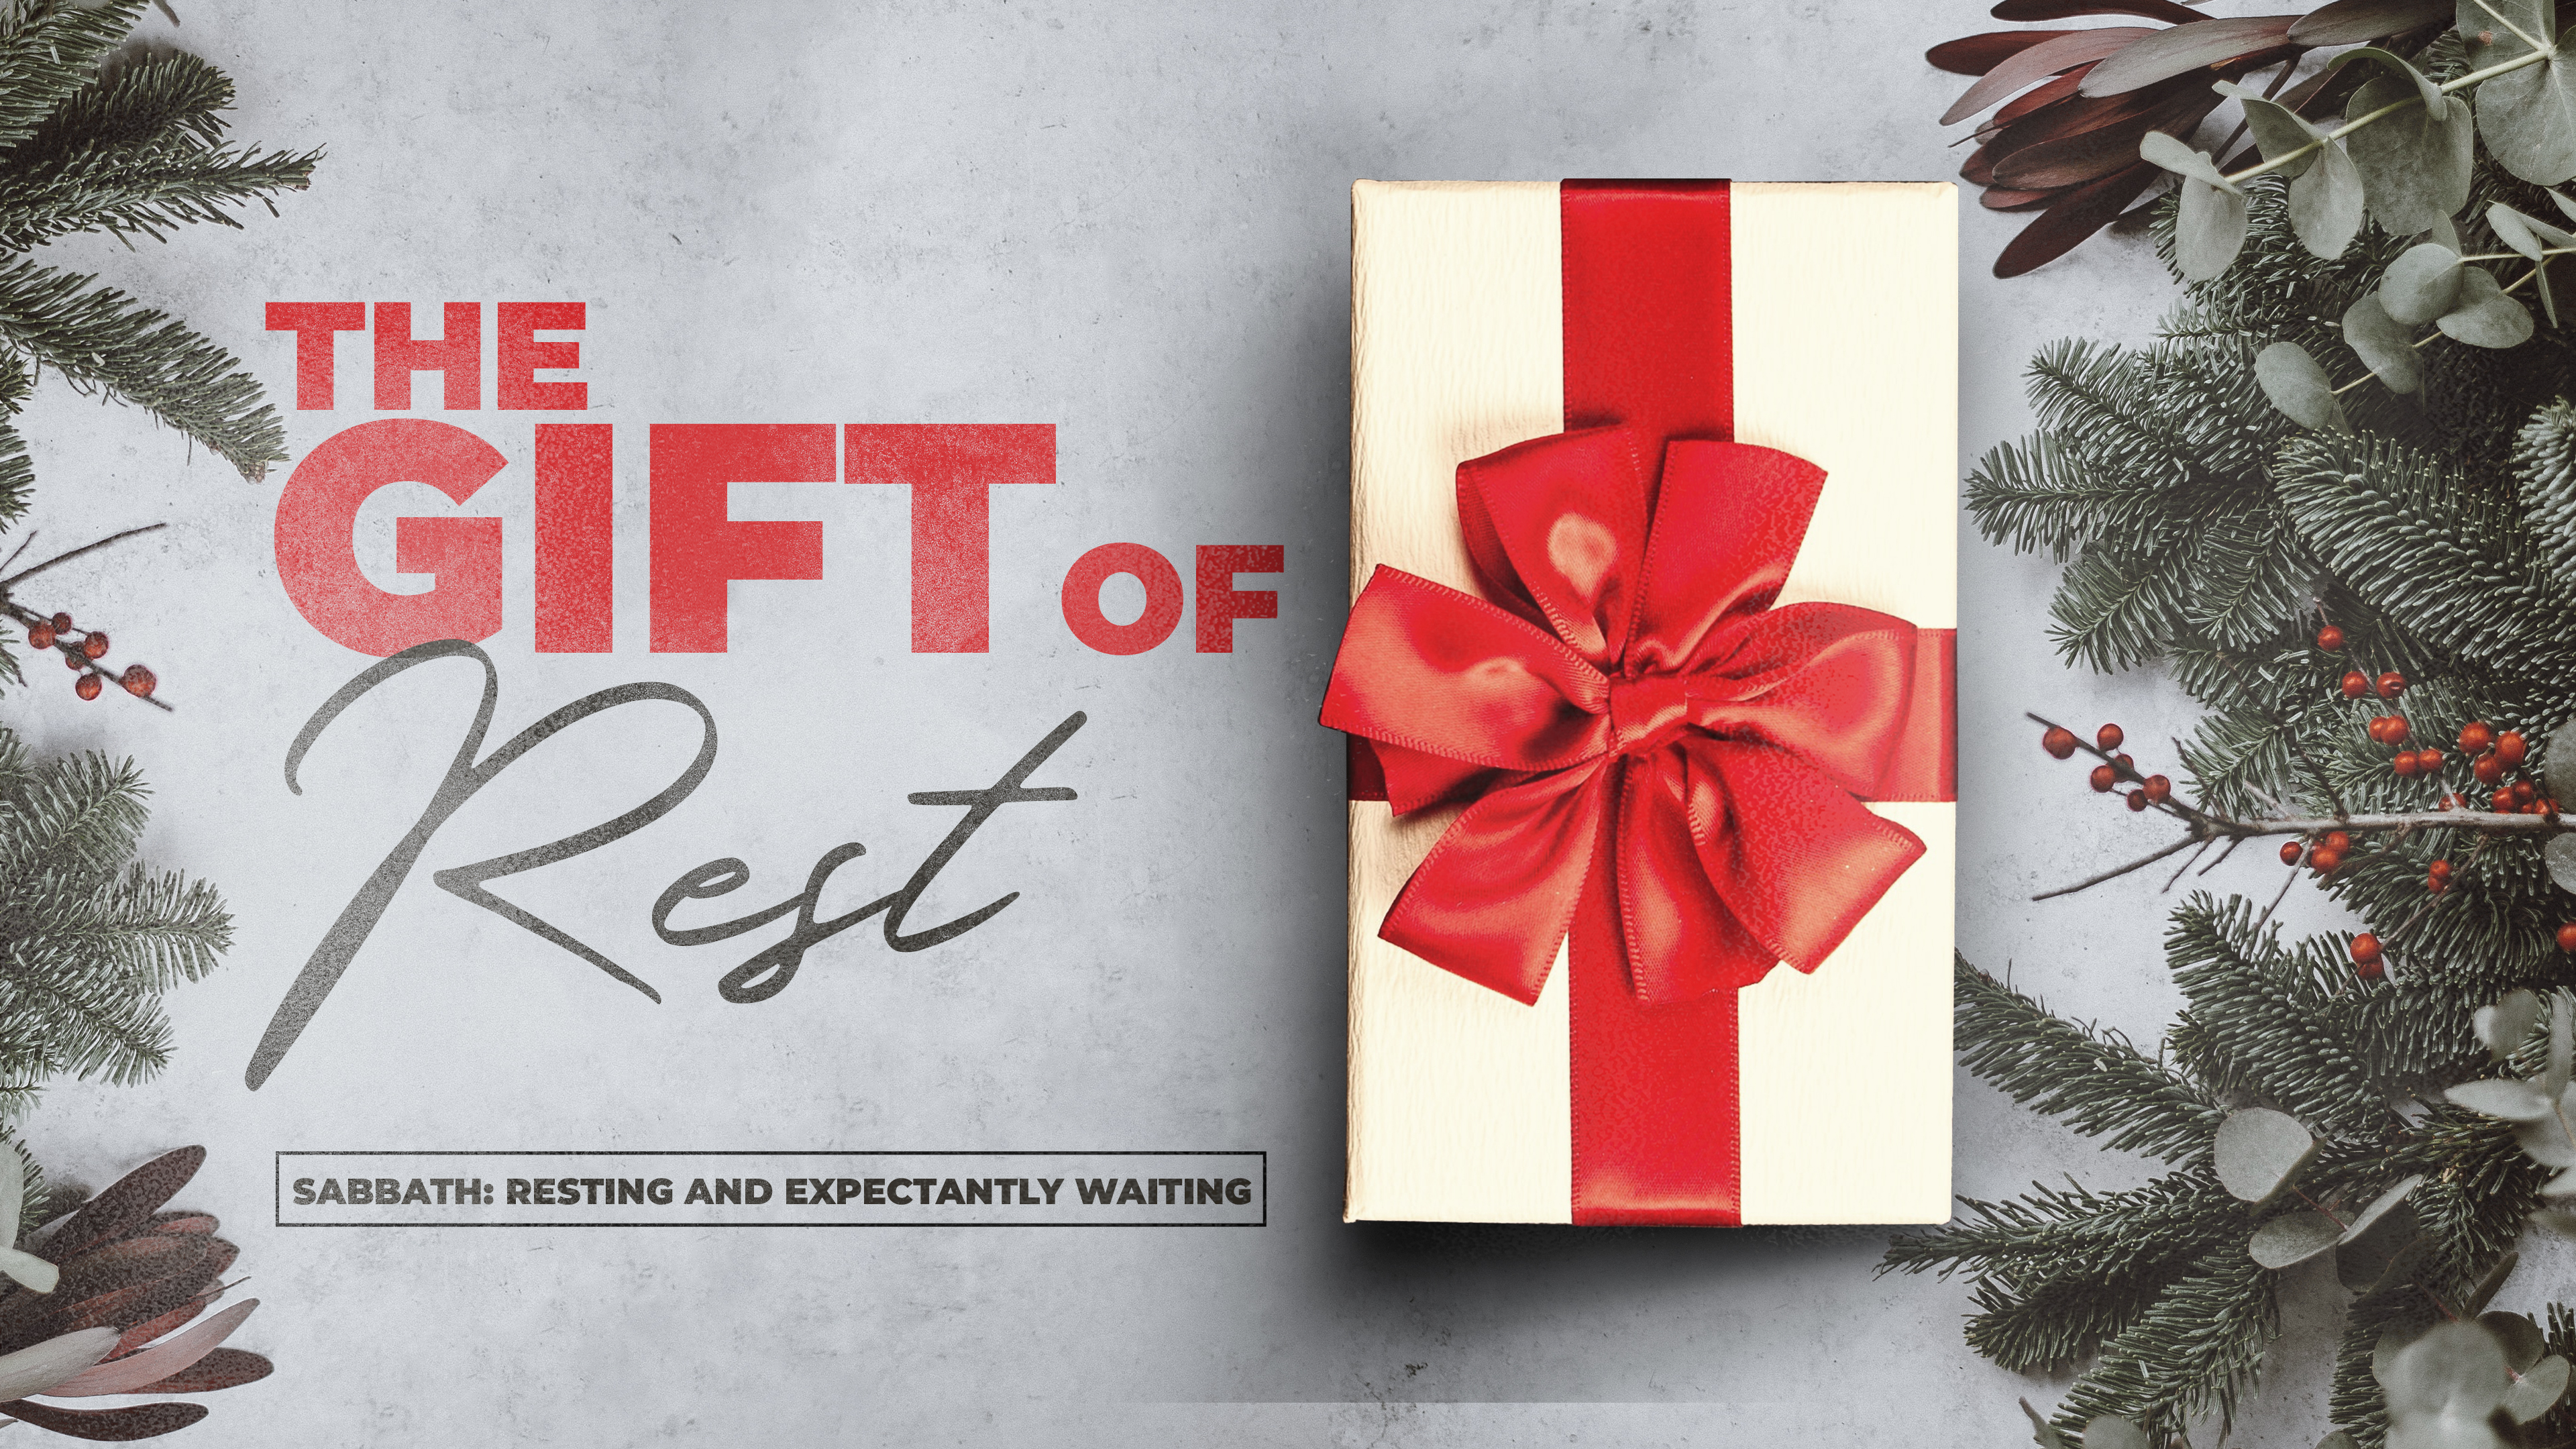 The Gift of rest image